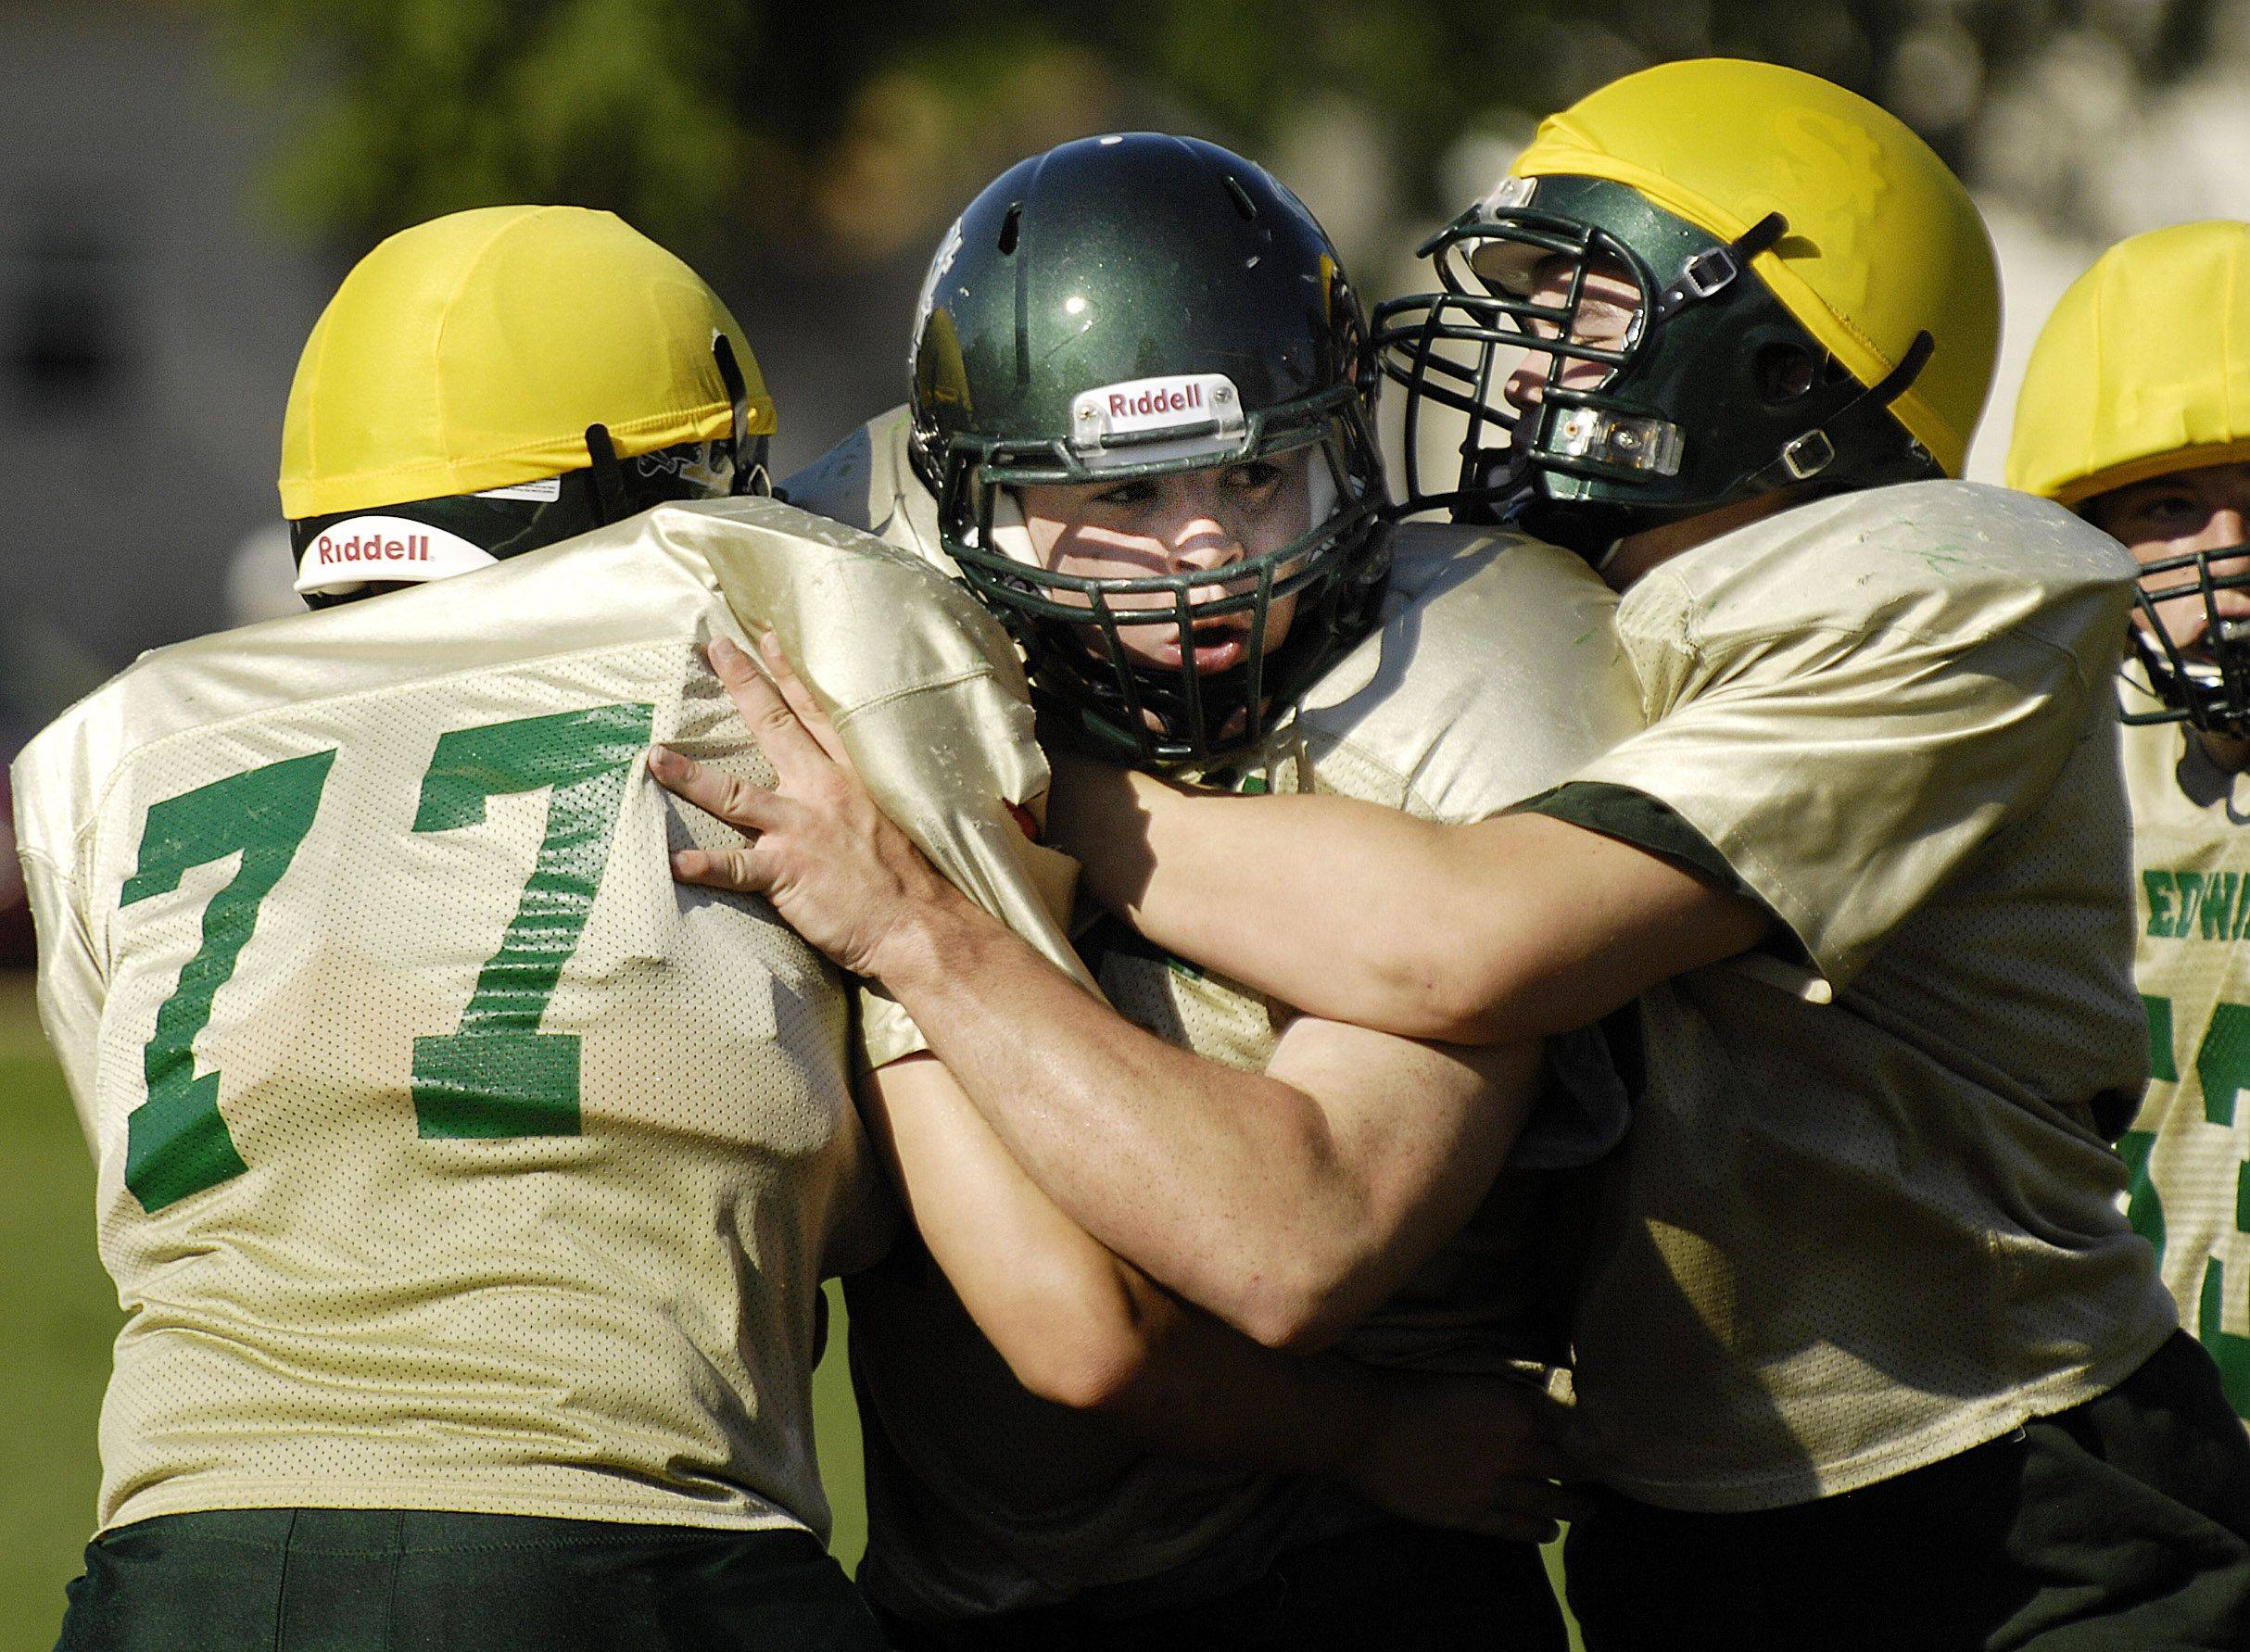 St. Edward defensive lineman Evan Finnane, a the Division I recruit, will be tough for opponents to handle this season.